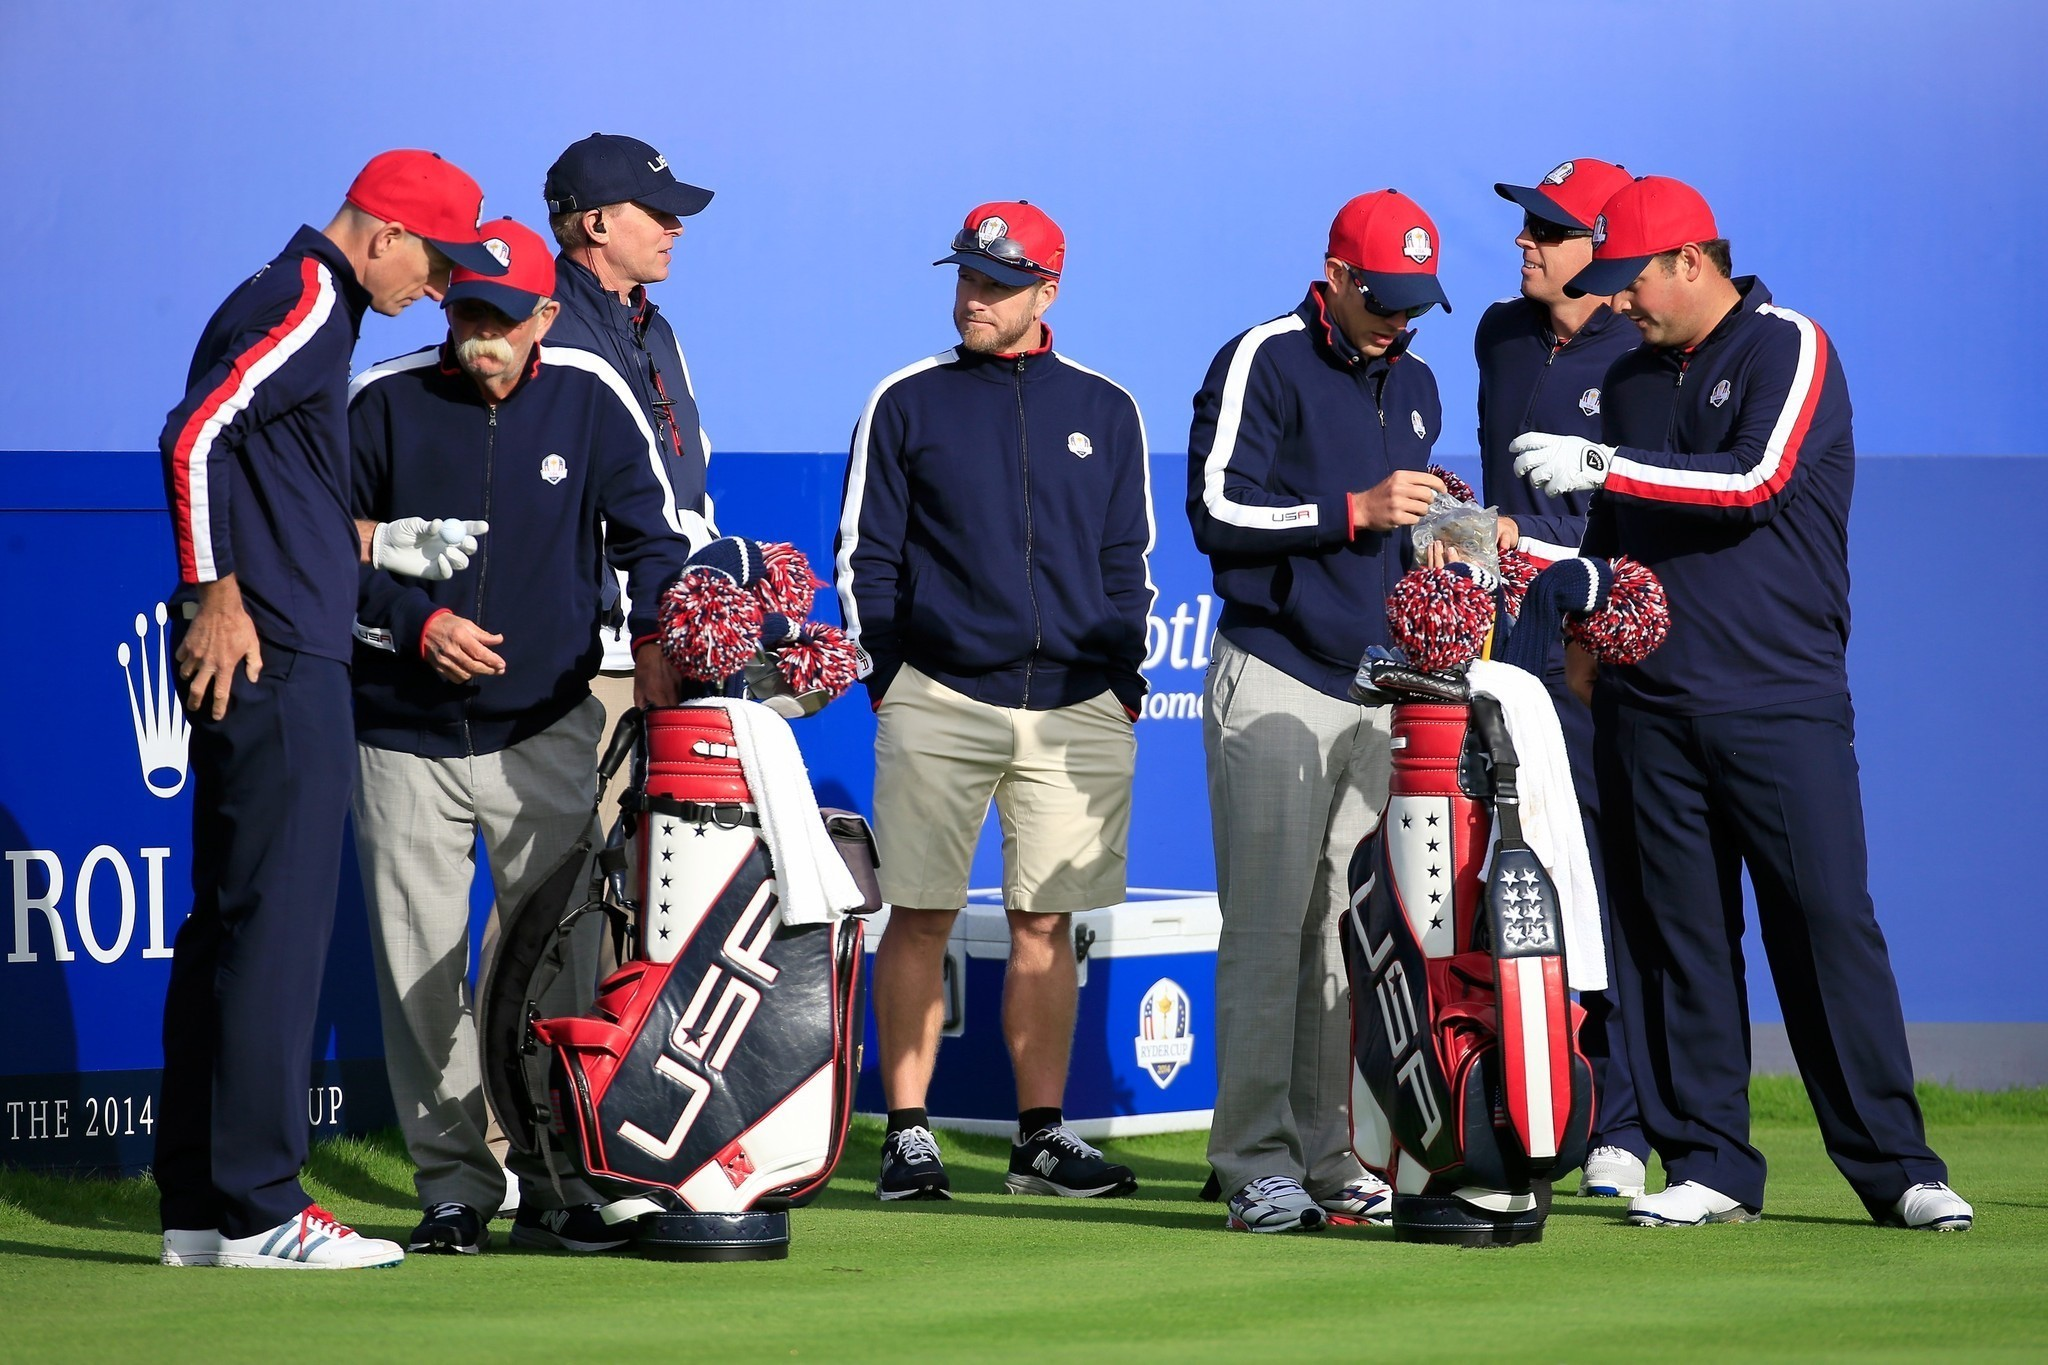 Ryder Cup course has a U.S. feel to it